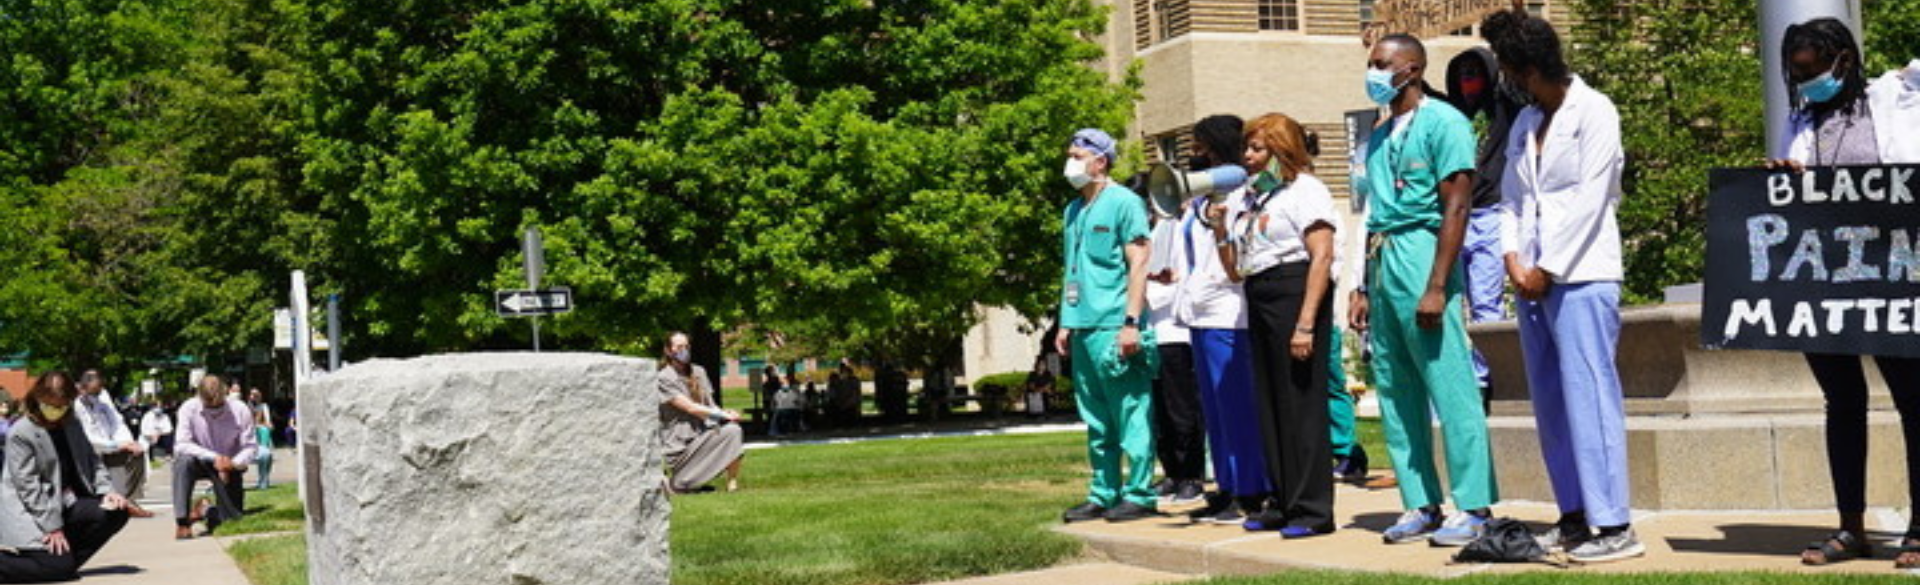 Our Commitment to Dismantling Racism | CU Cancer Center | Aurora, Colorado